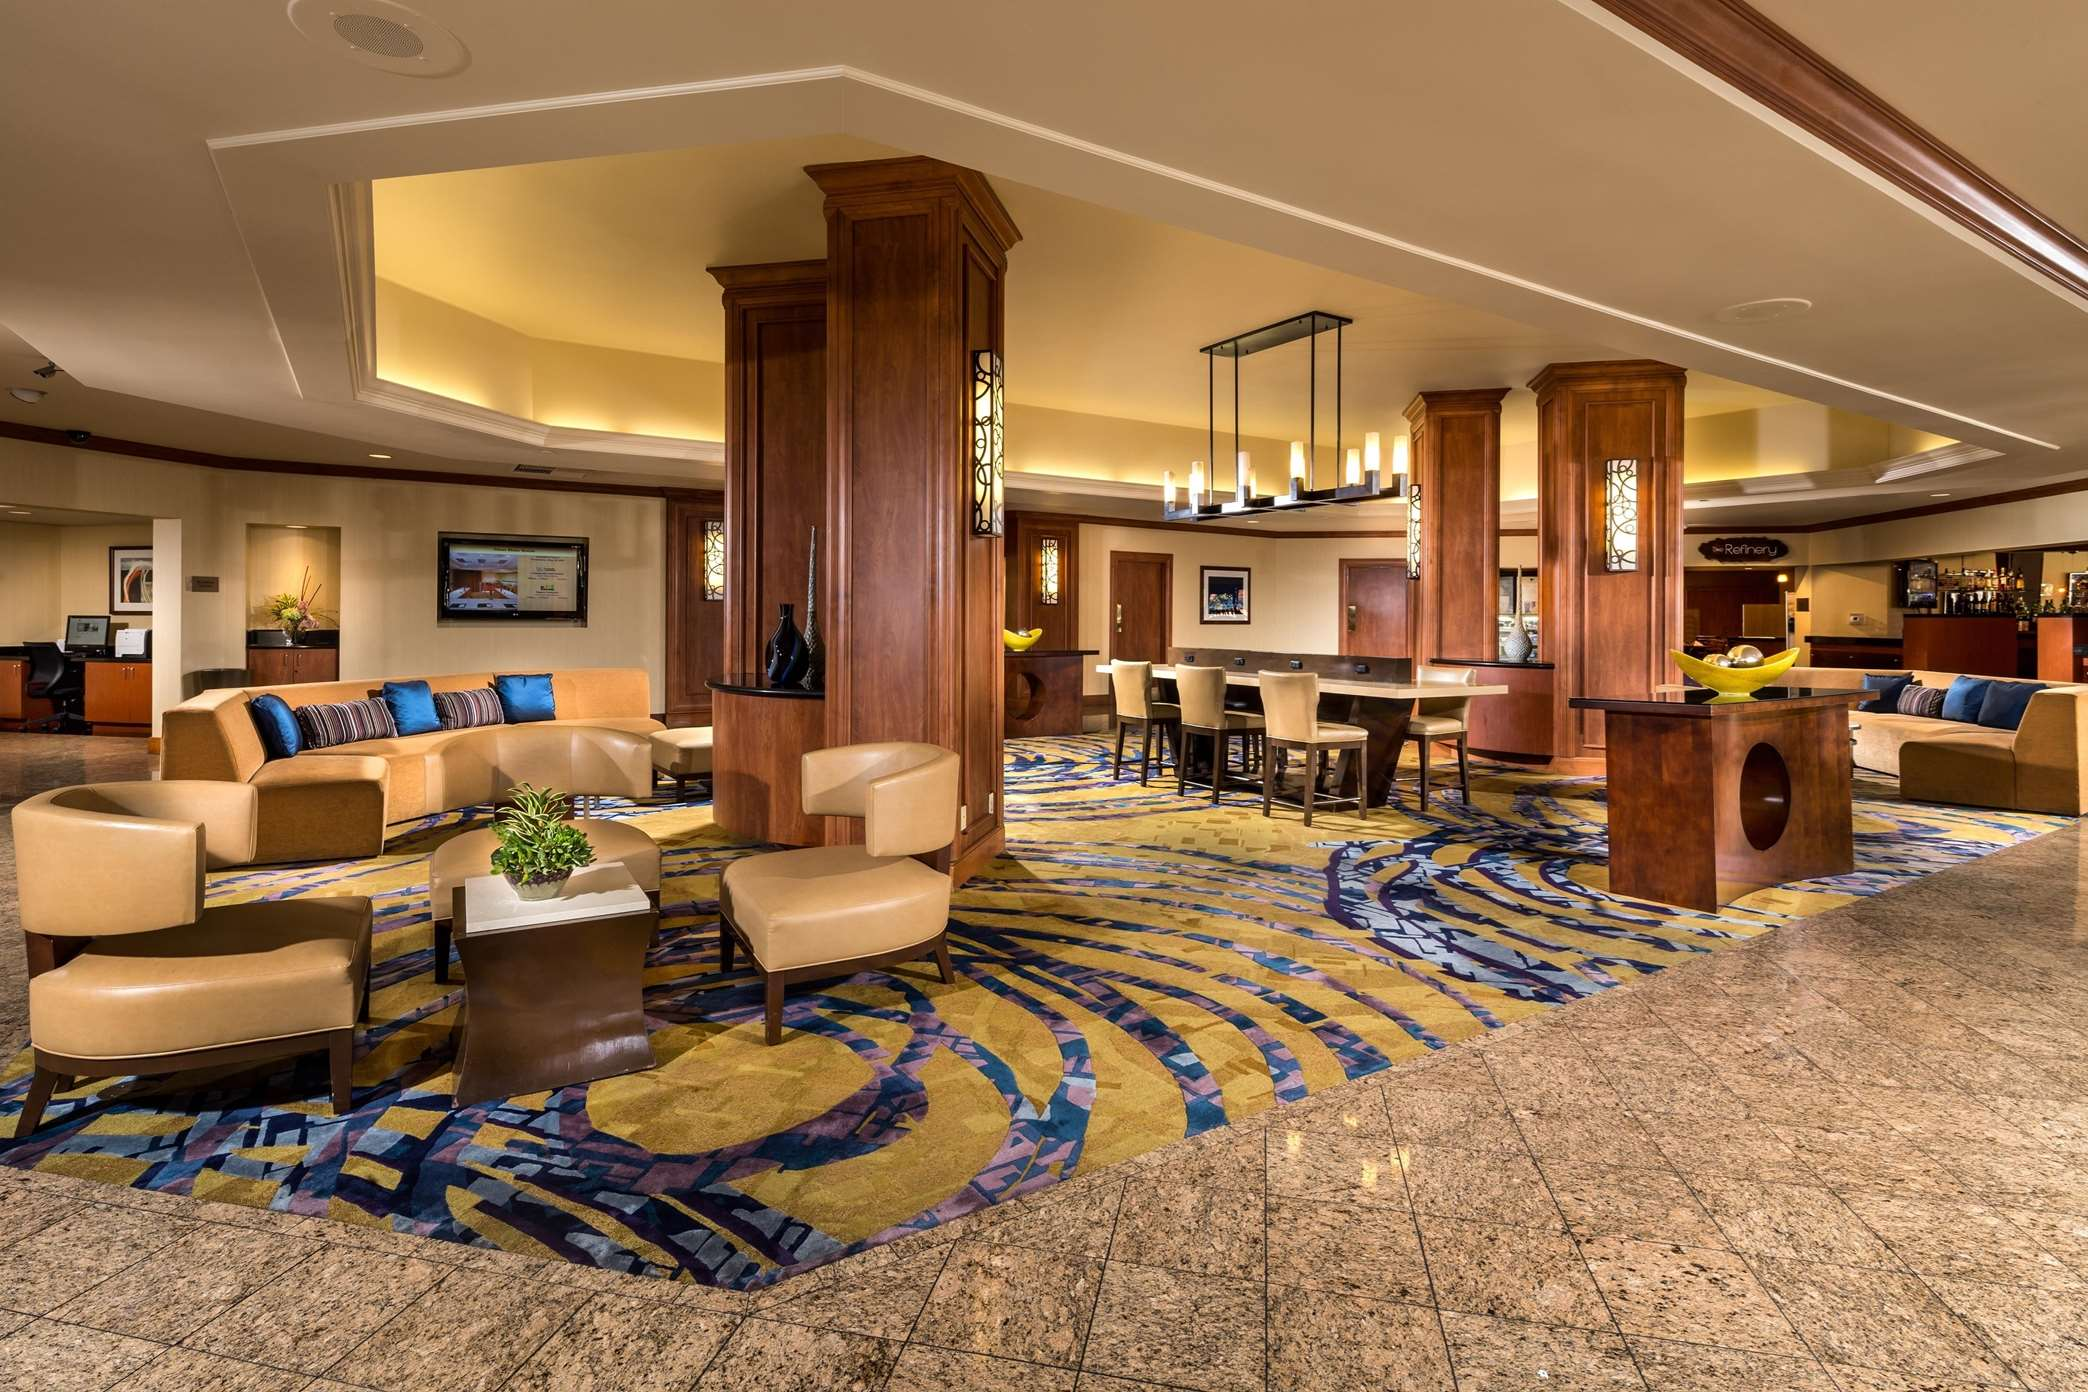 doubletree by hilton hotel carson coupons carson ca near me 8coupons. Black Bedroom Furniture Sets. Home Design Ideas